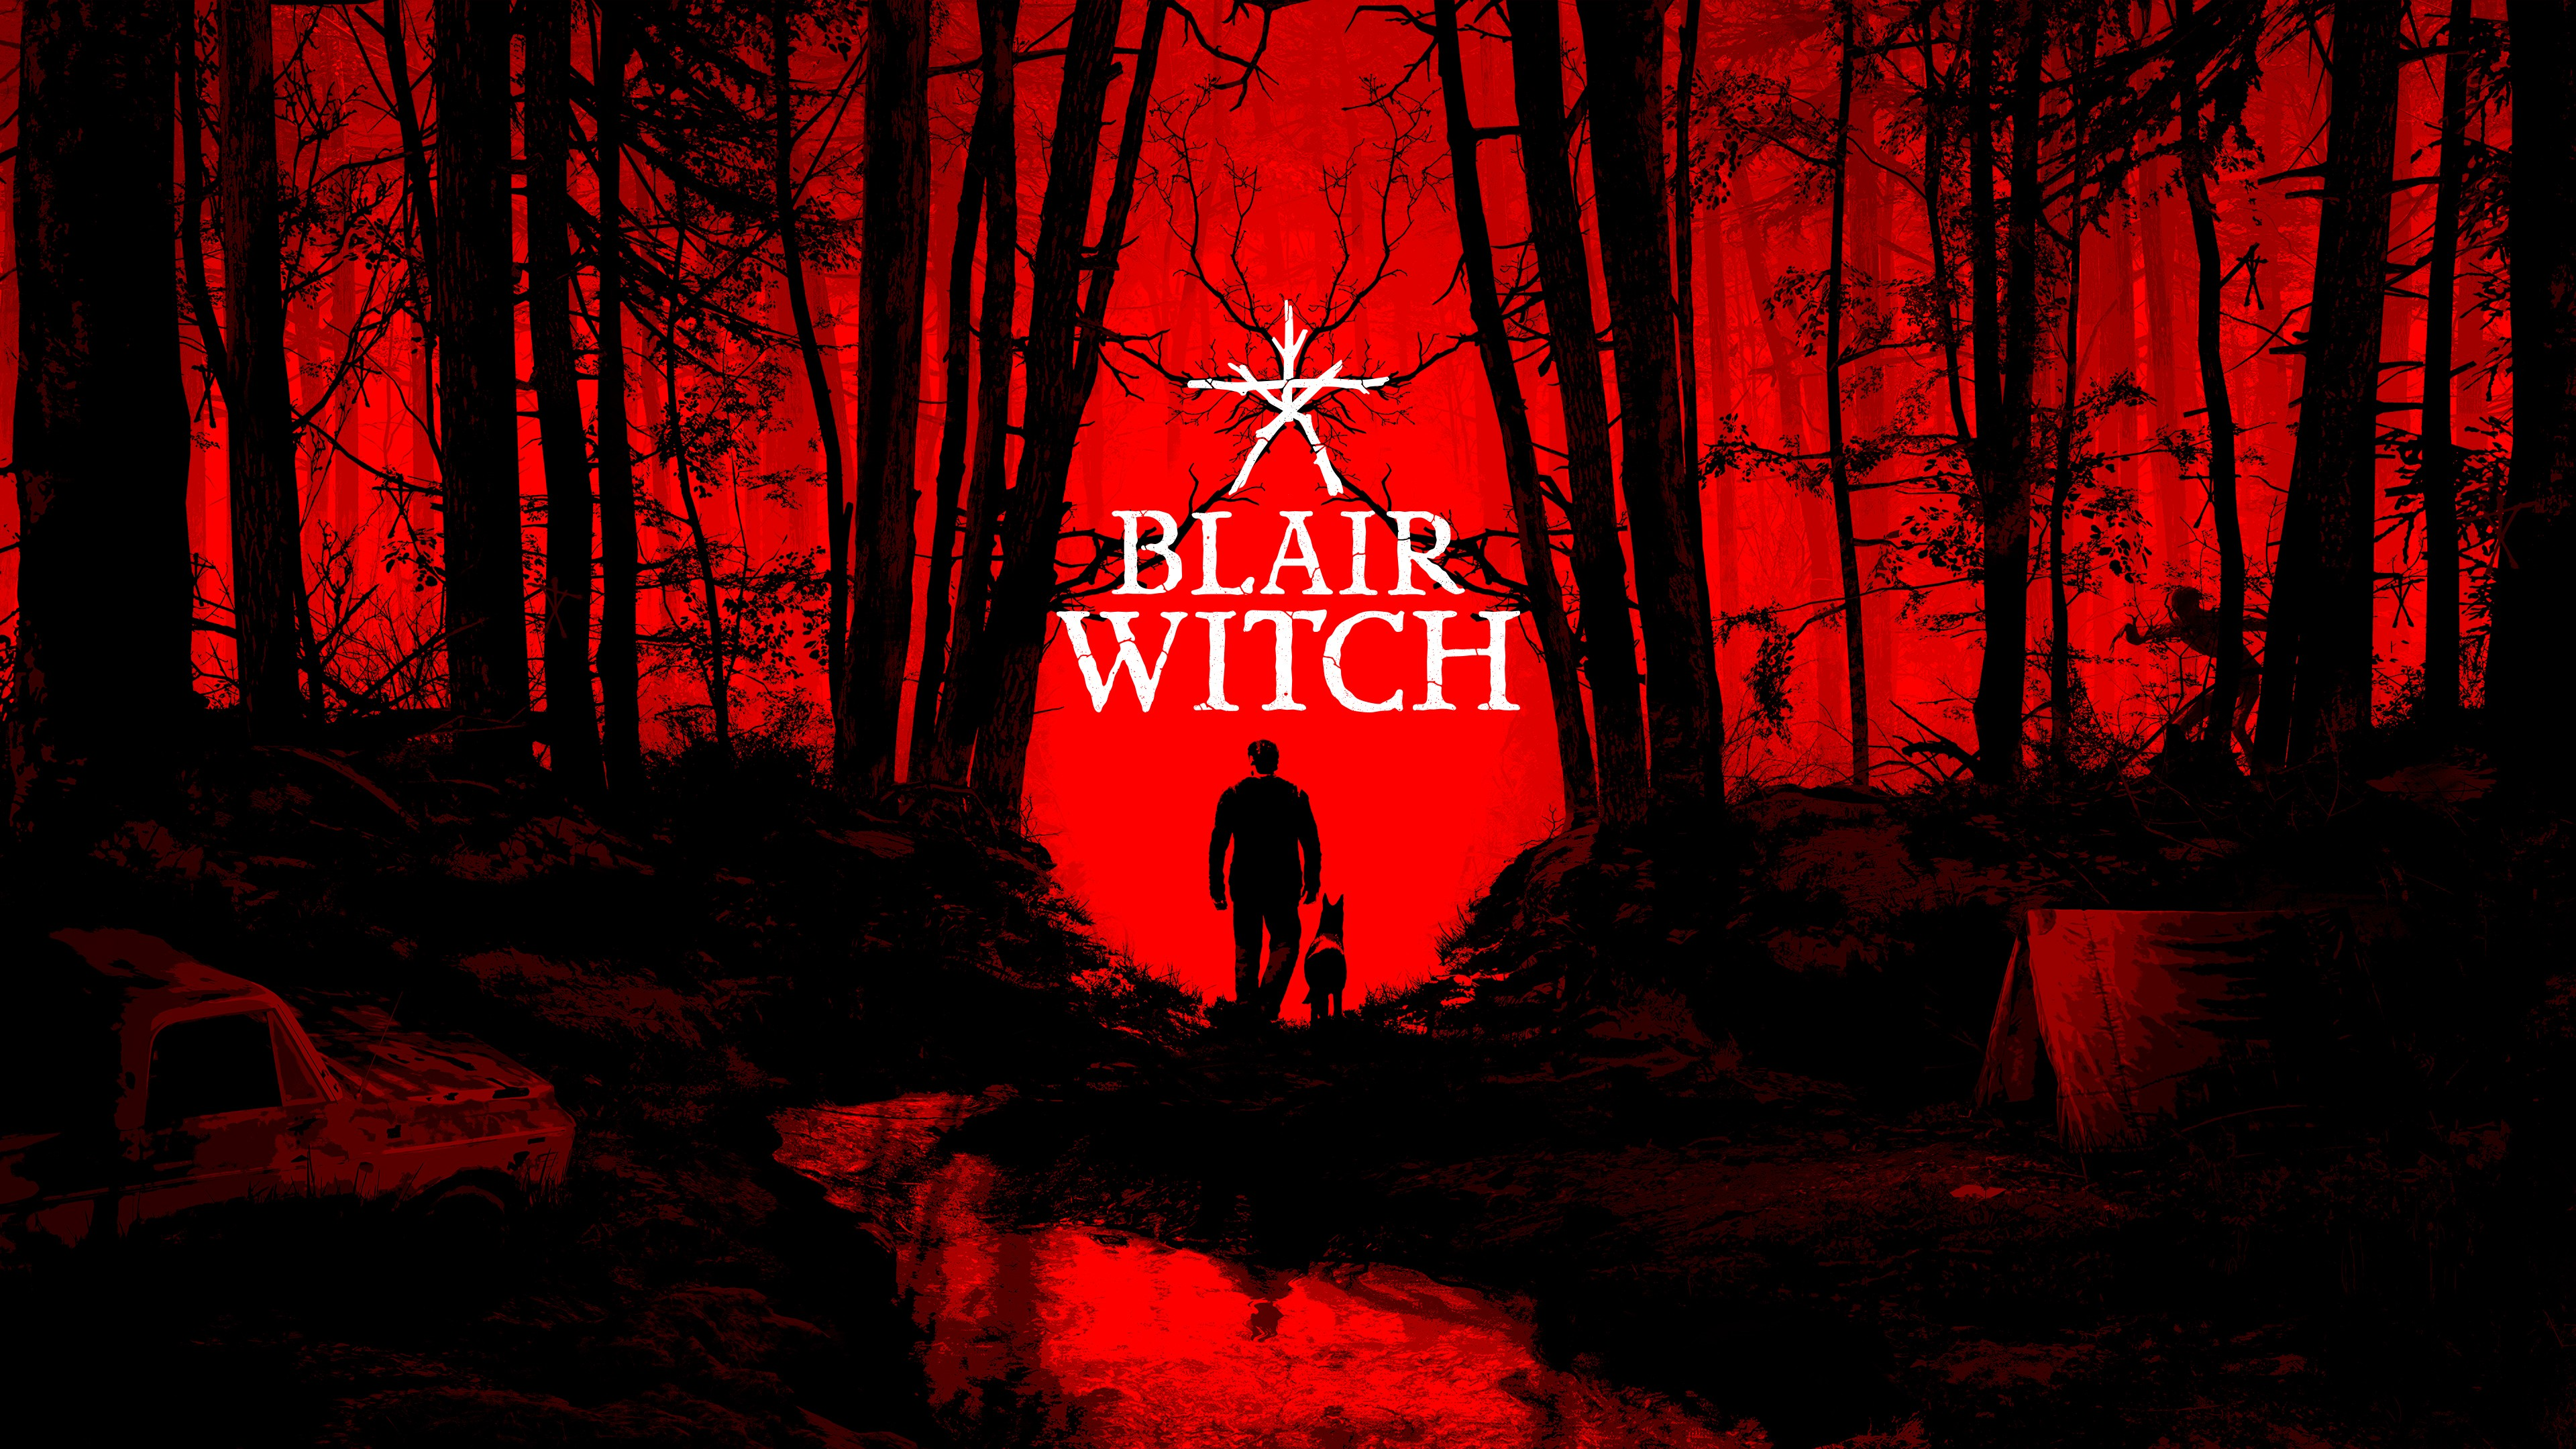 Blair Witch 2019 4k Hd Games 4k Wallpapers Images